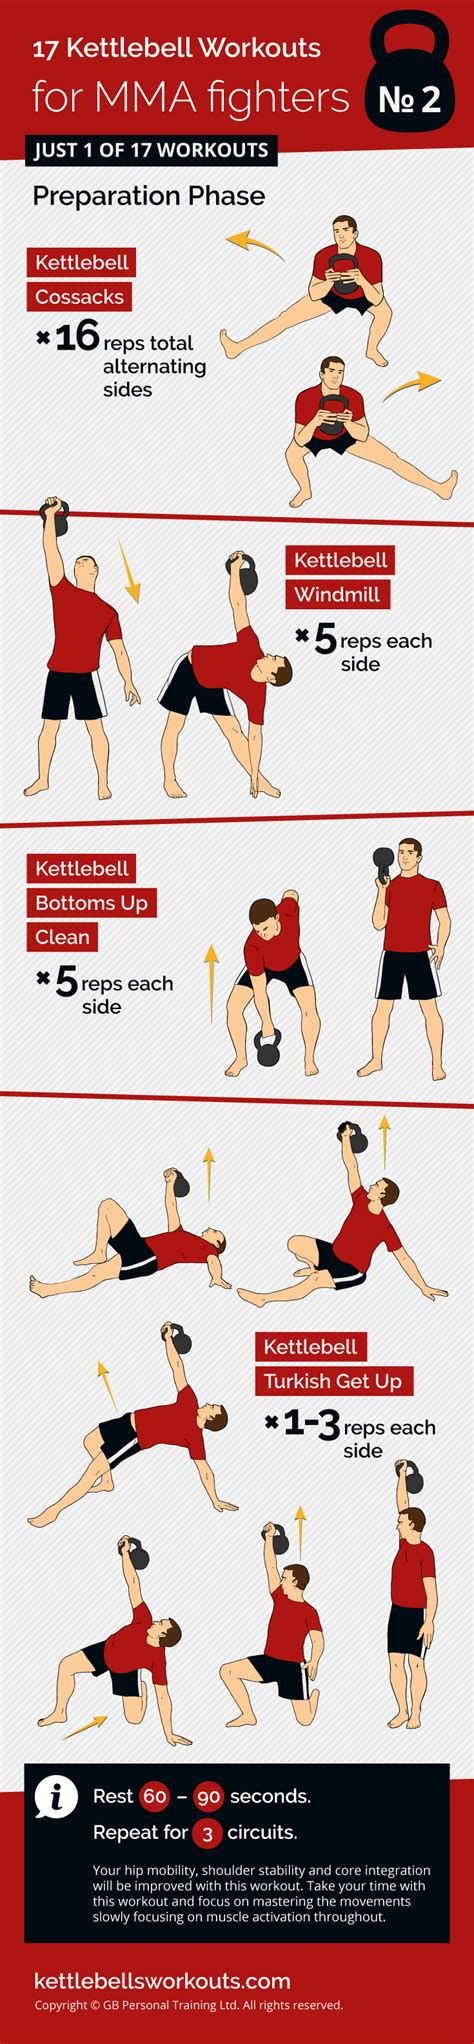 kettlebell workouts workout mma shoulder mobility stability fighters core fun strength kettlebellsworkouts exercise hip ift tt